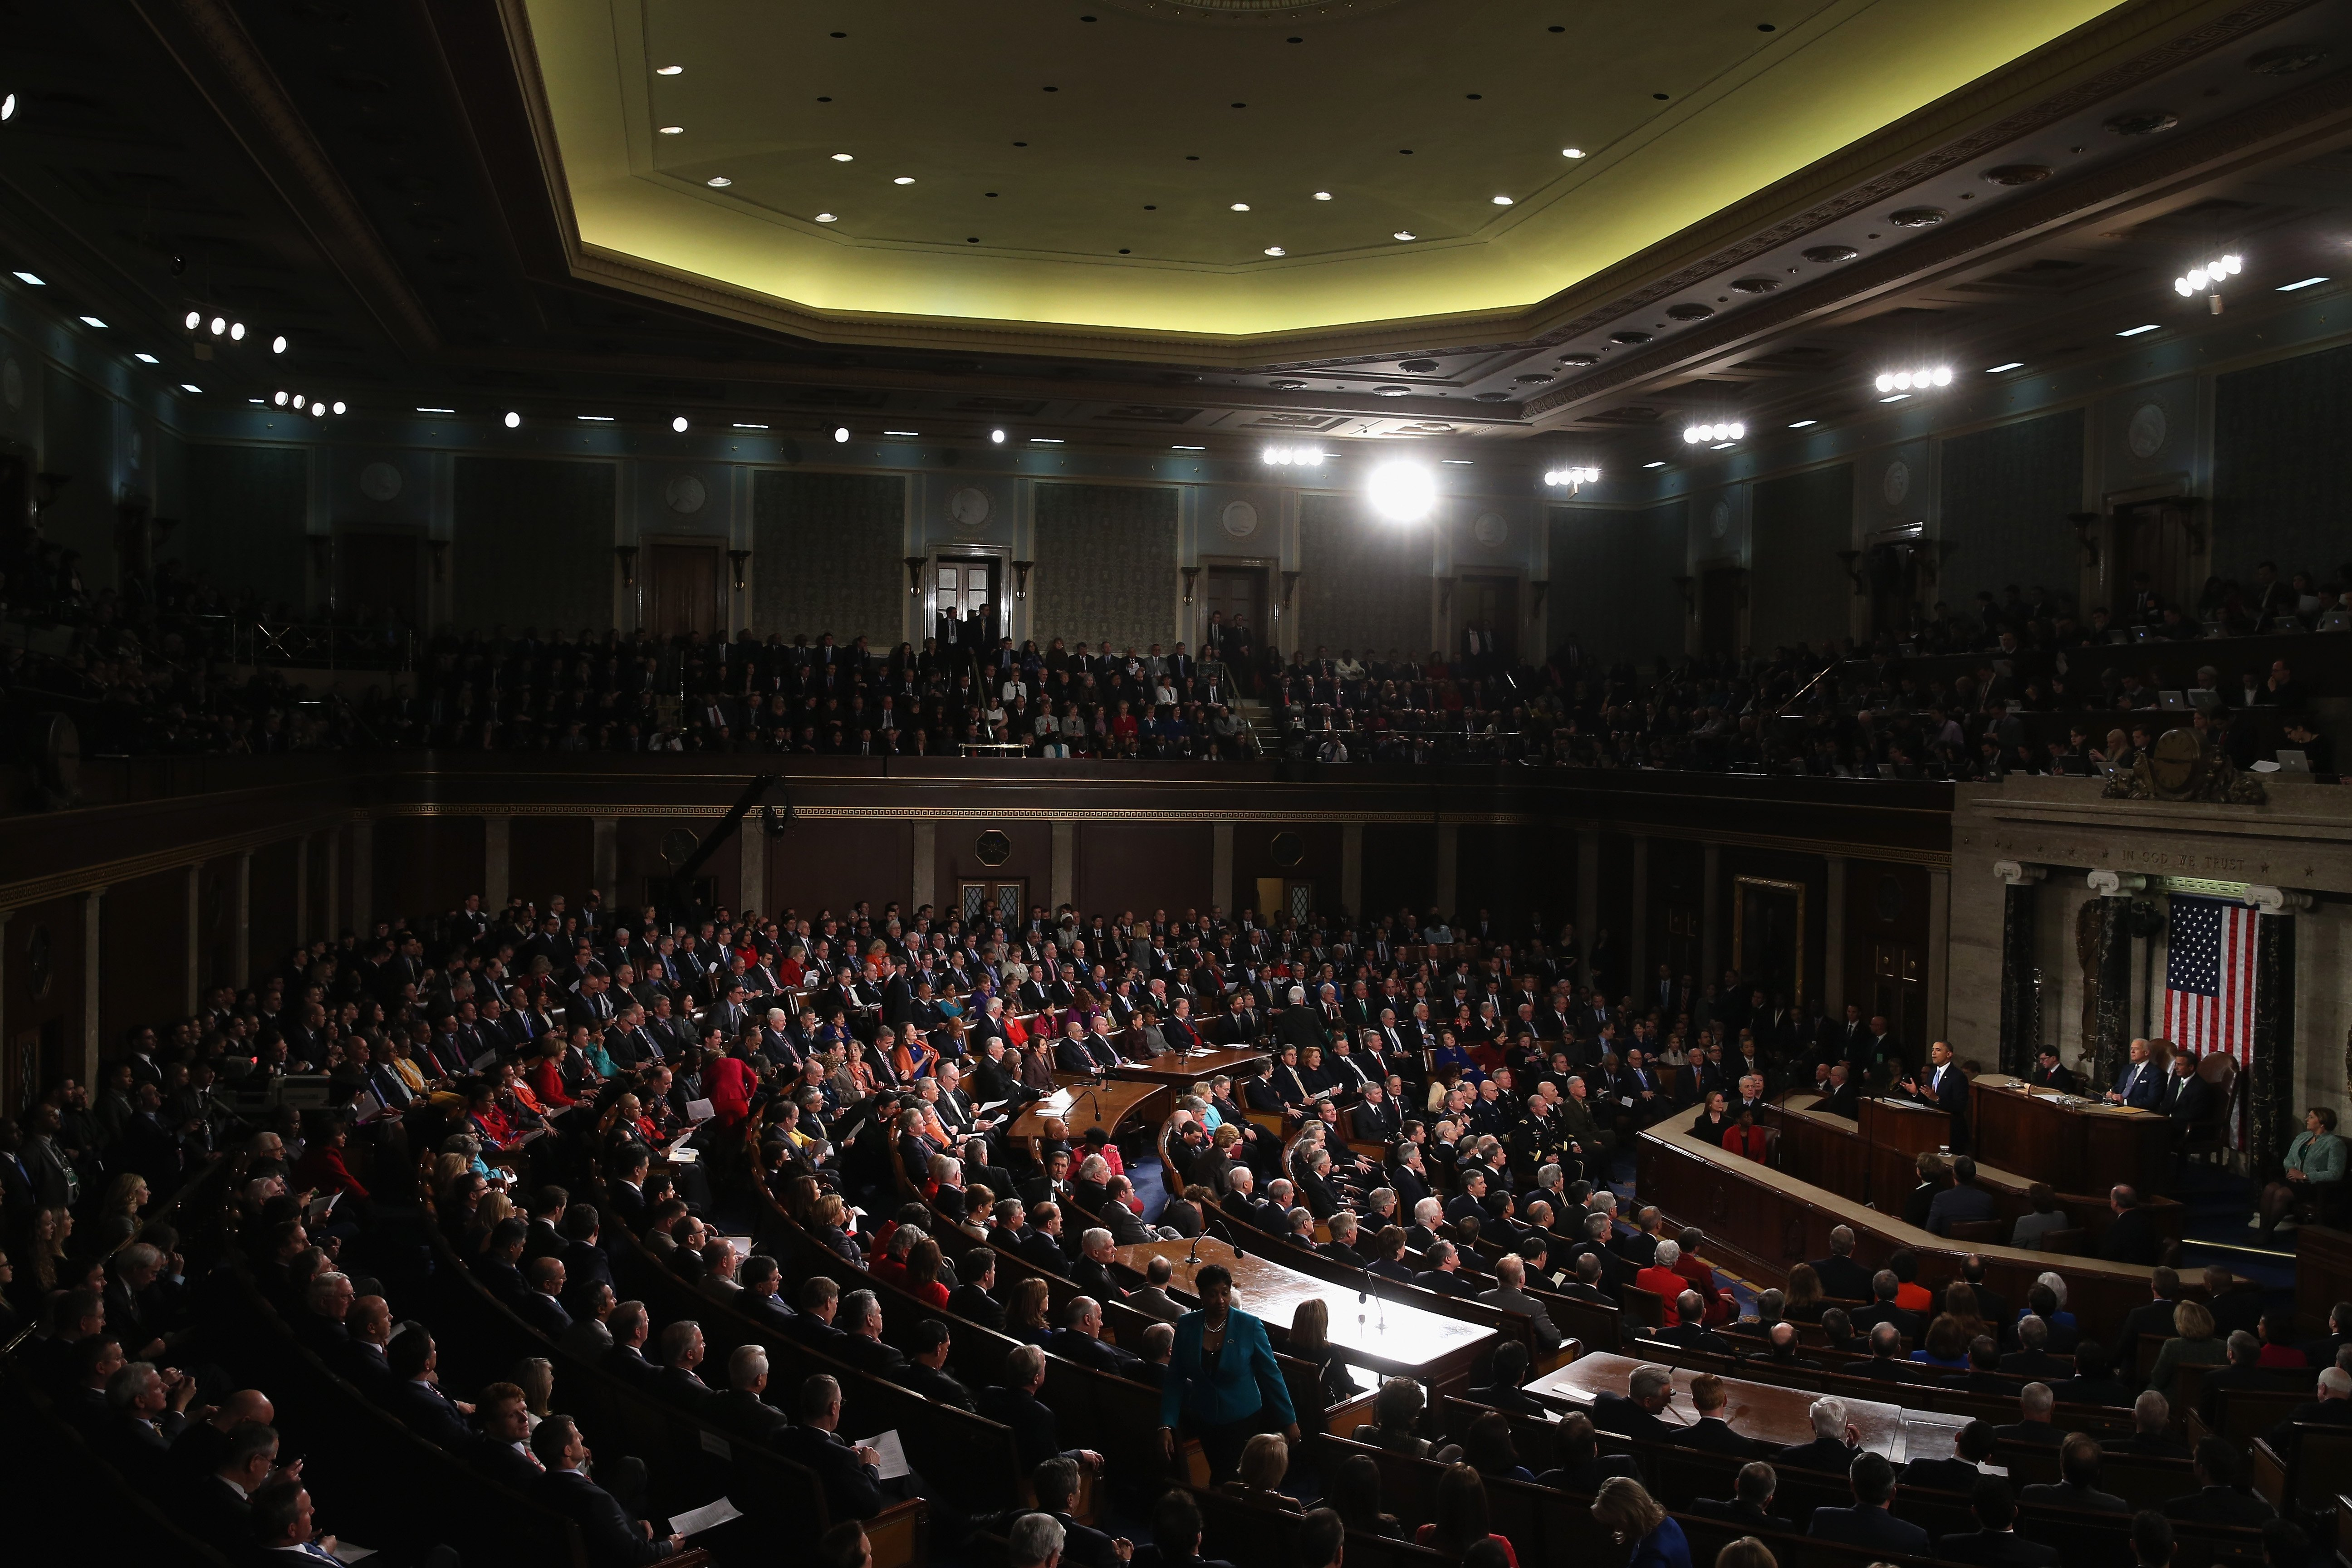 President Barack Obama delivers the State of the Union address to a joint session of Congress in the House Chamber at the U.S. Capitol on January 28, 2014 in Washington.